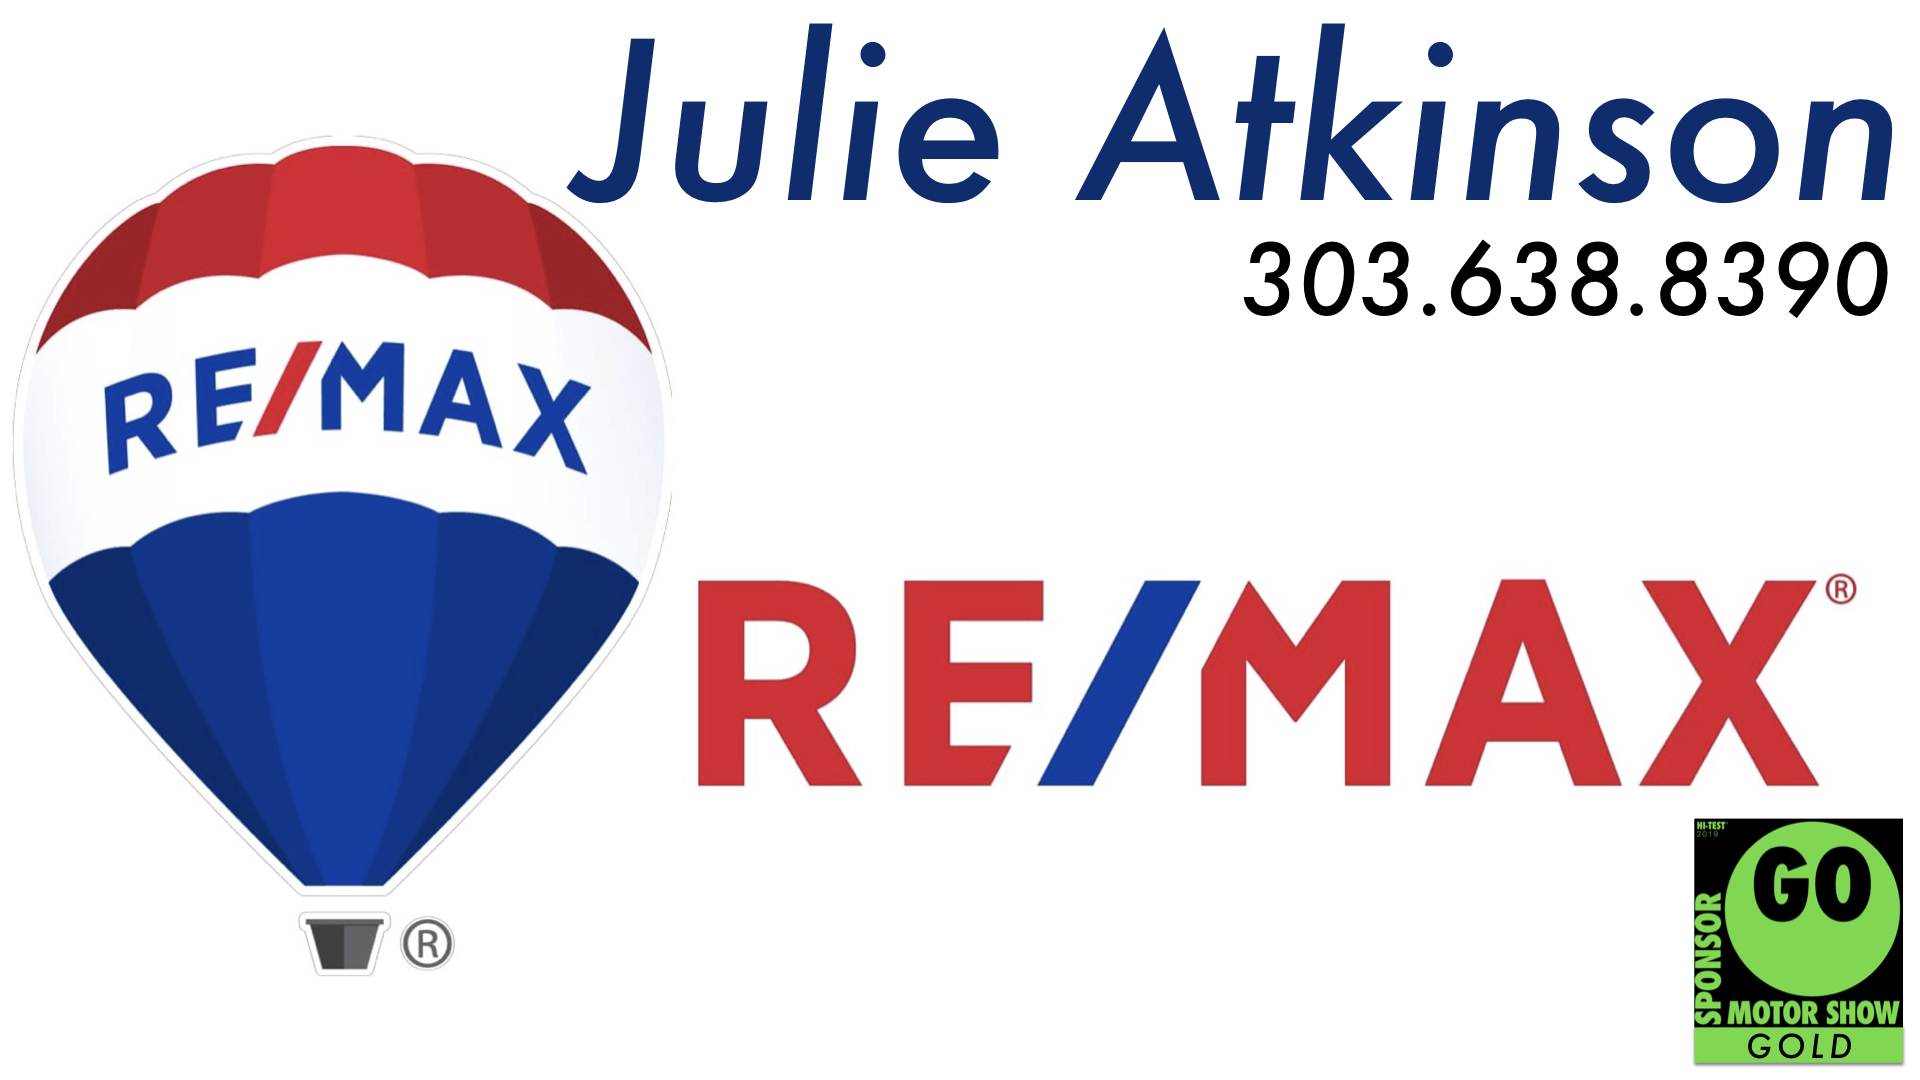 Julie Atkinson REMAX